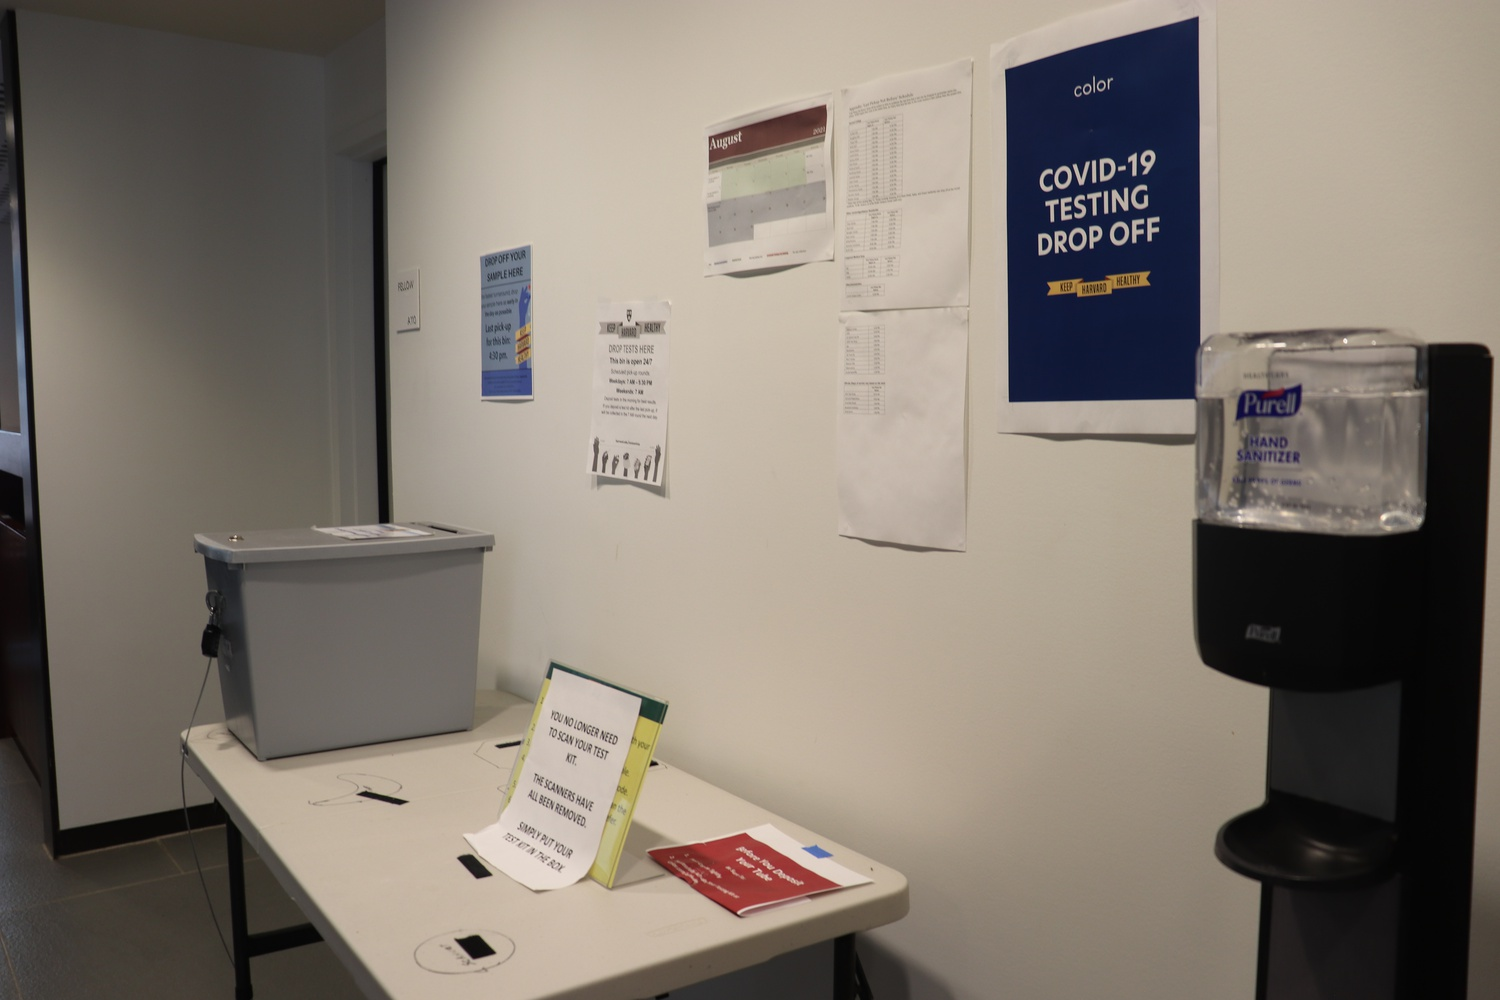 Students deposit their Covid-19 tests at drop-off sites located in their dormitories.